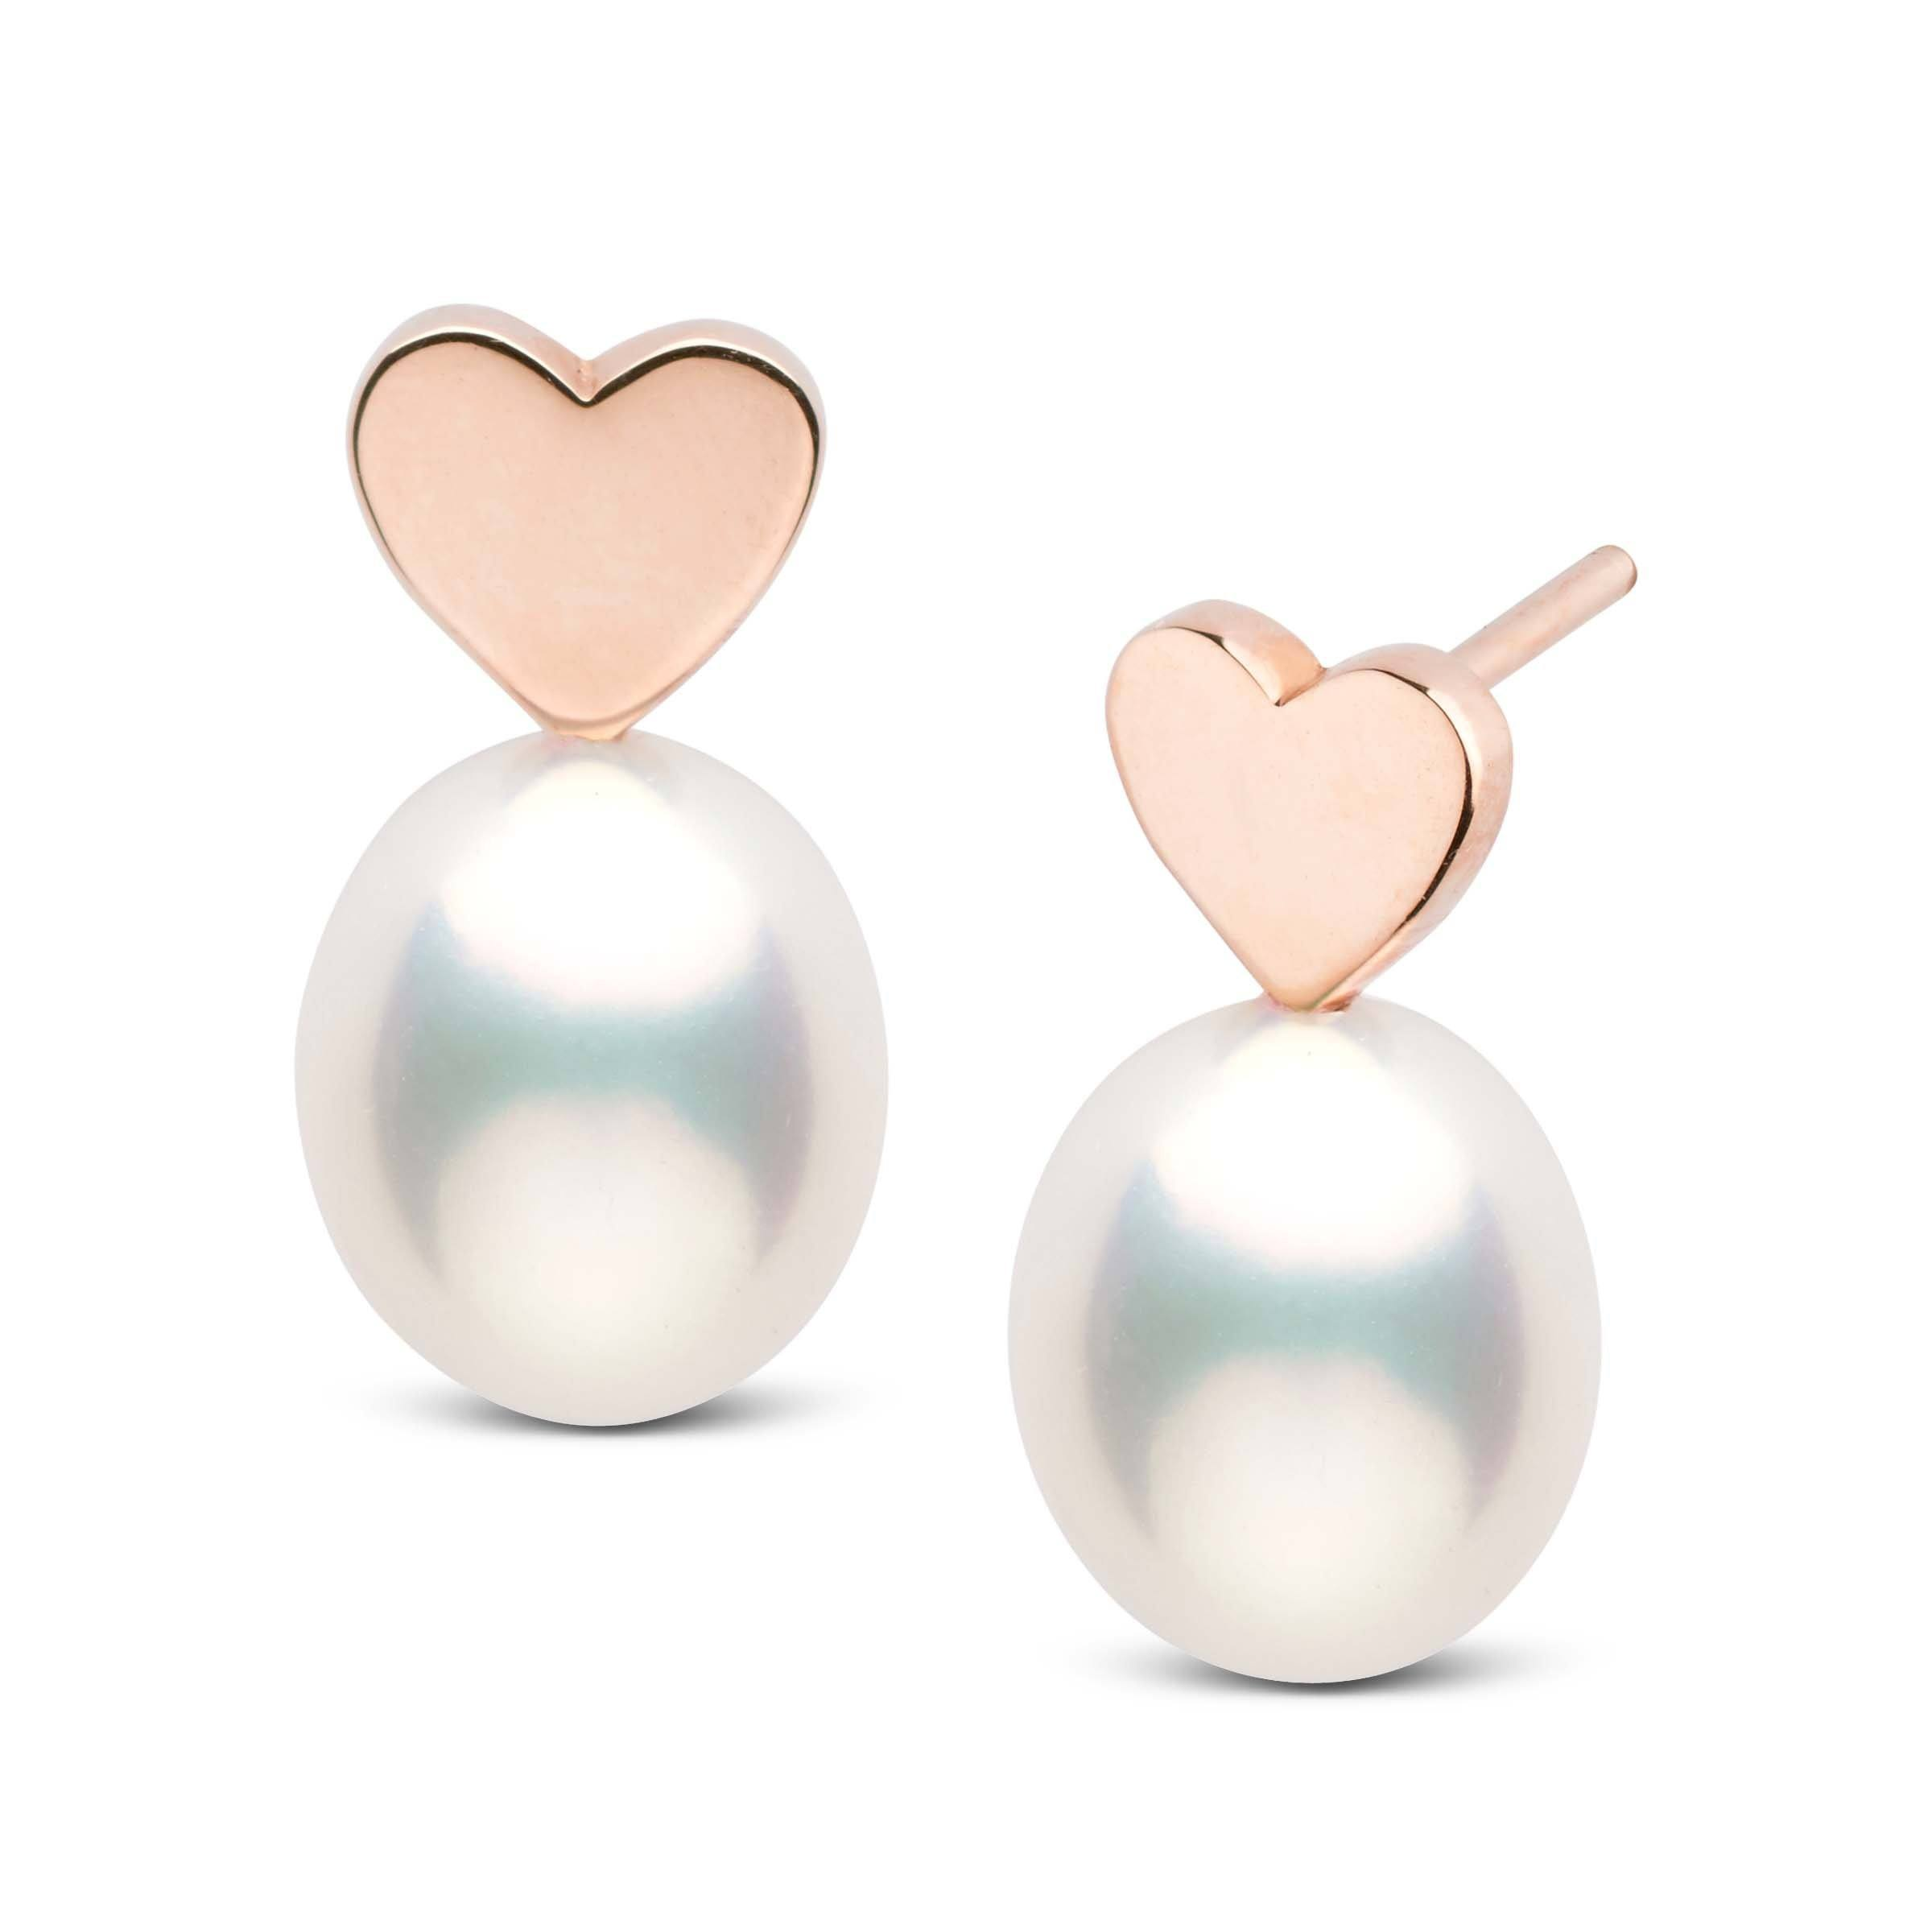 Baby Heart Collection Metallic White Freshwater Drop 7.0-8.0 mm Pearl Earrings